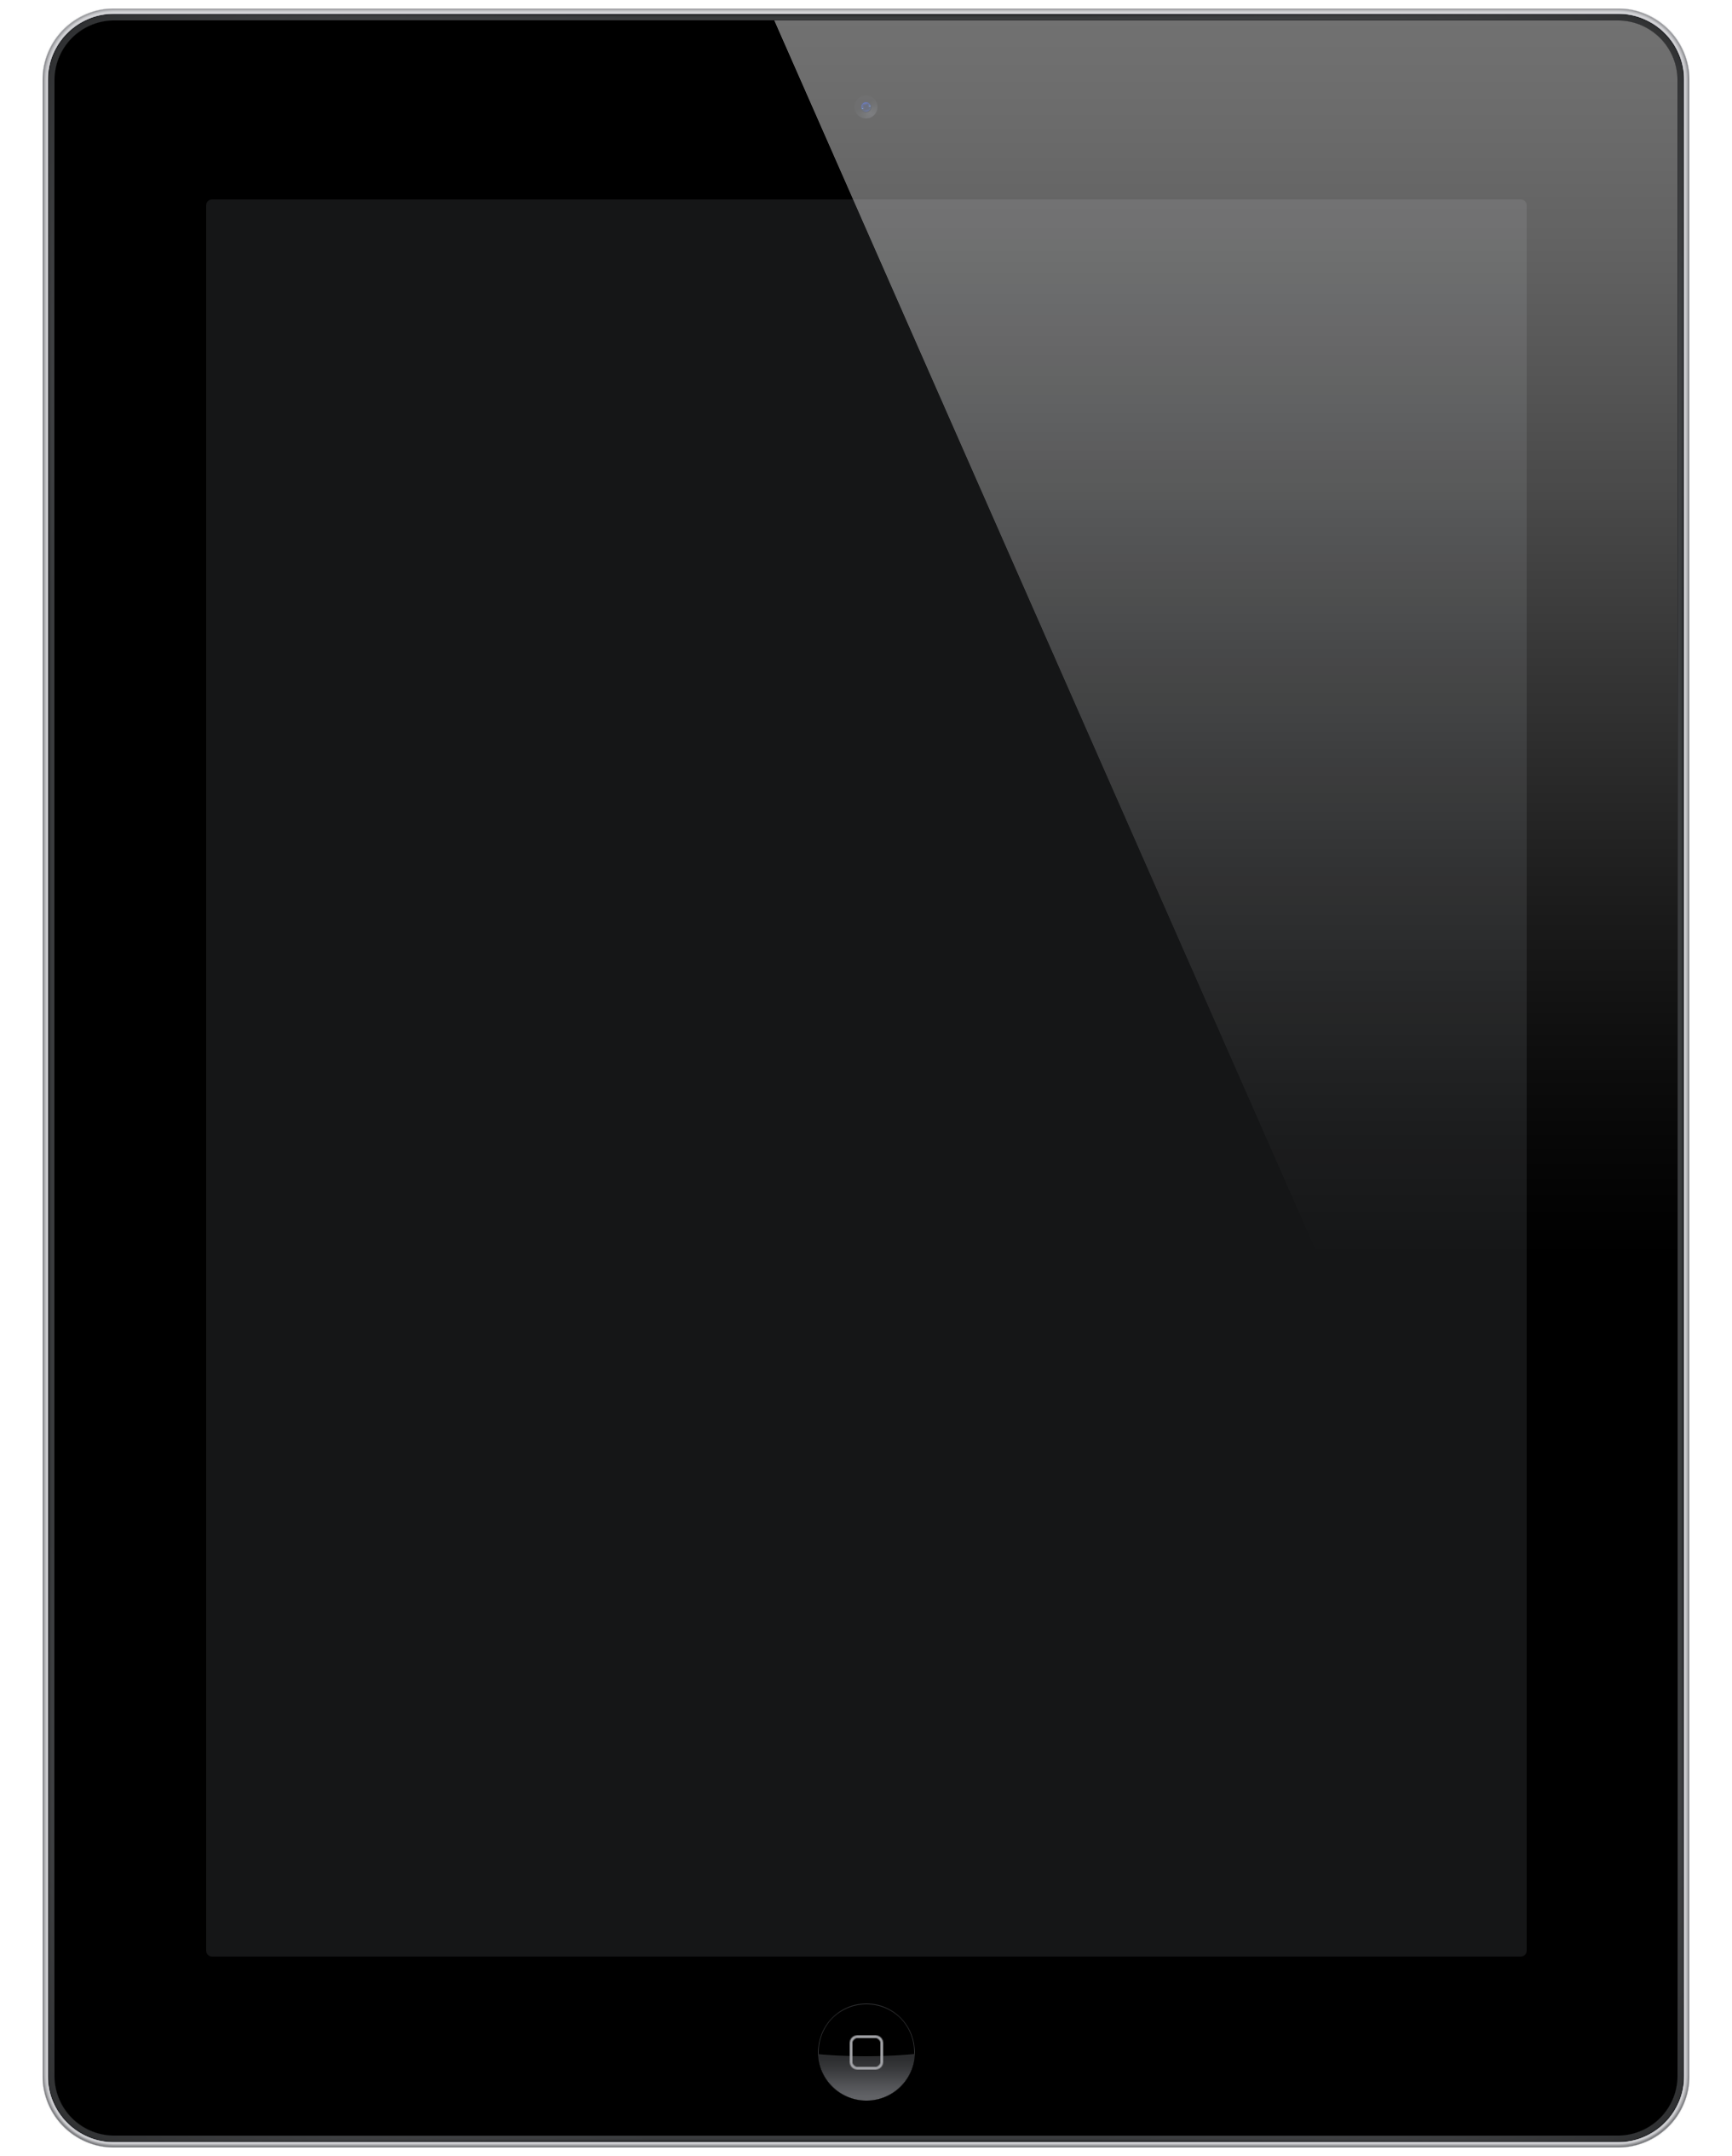 File:IPad 3.png - Wikipedia Ipad 3 Png